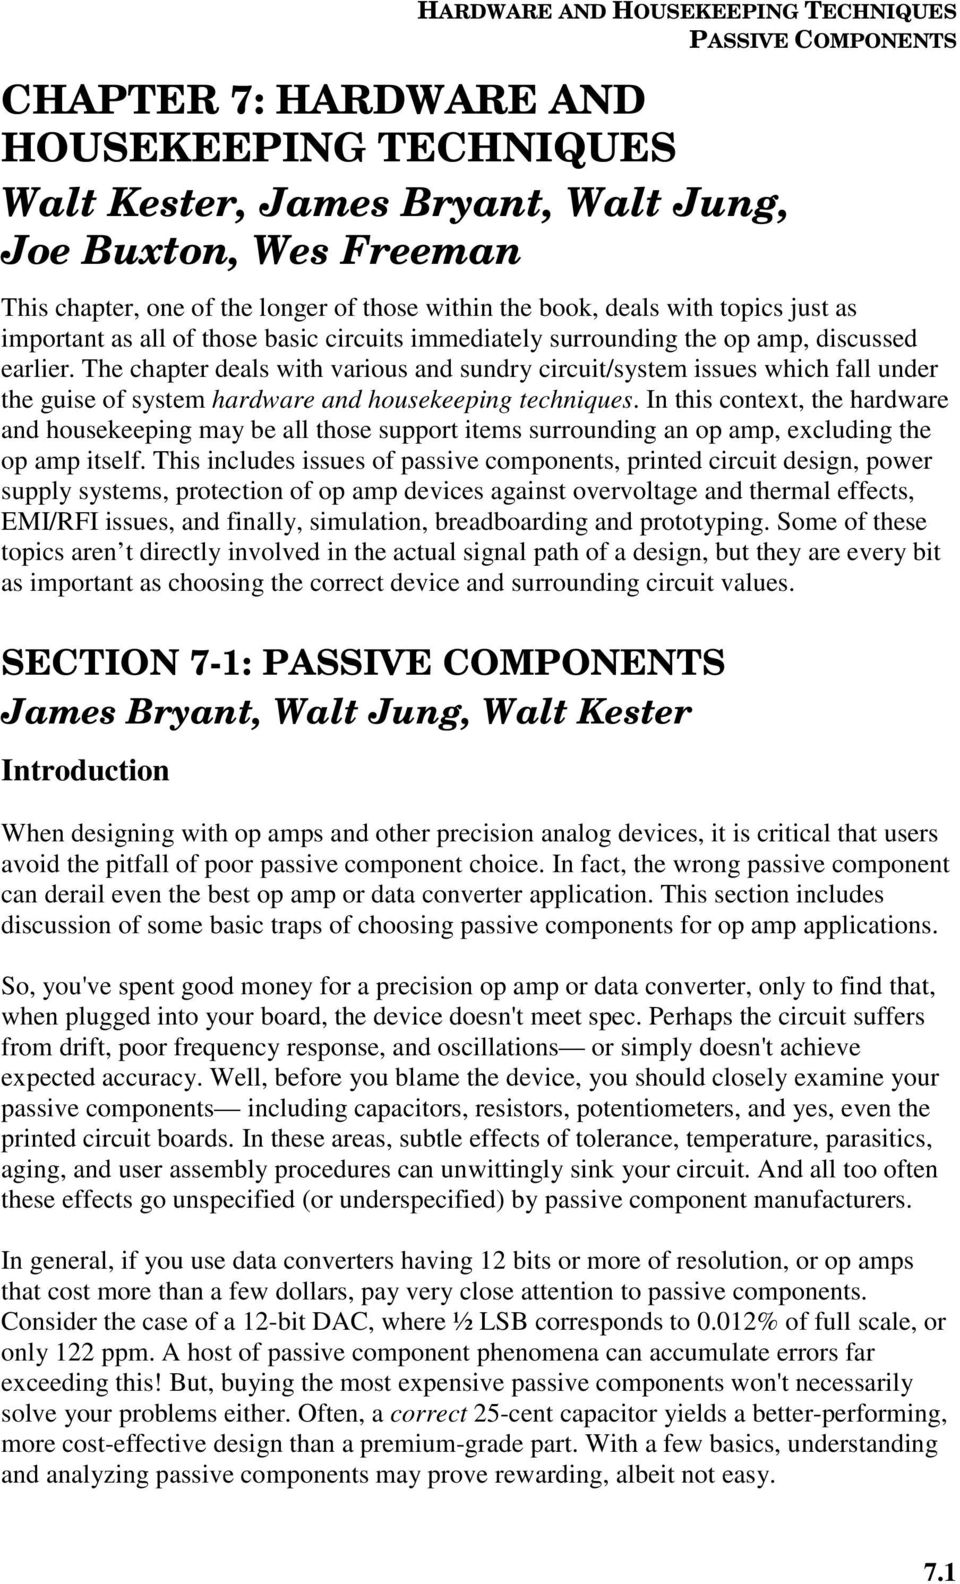 Hardware And Housekeeping Techniques Pdf 20v Ultra Precision Op Amps The Chapter Deals With Various Sundry Circuit System Issues Which Fall Under Guise 4 Amp Applications